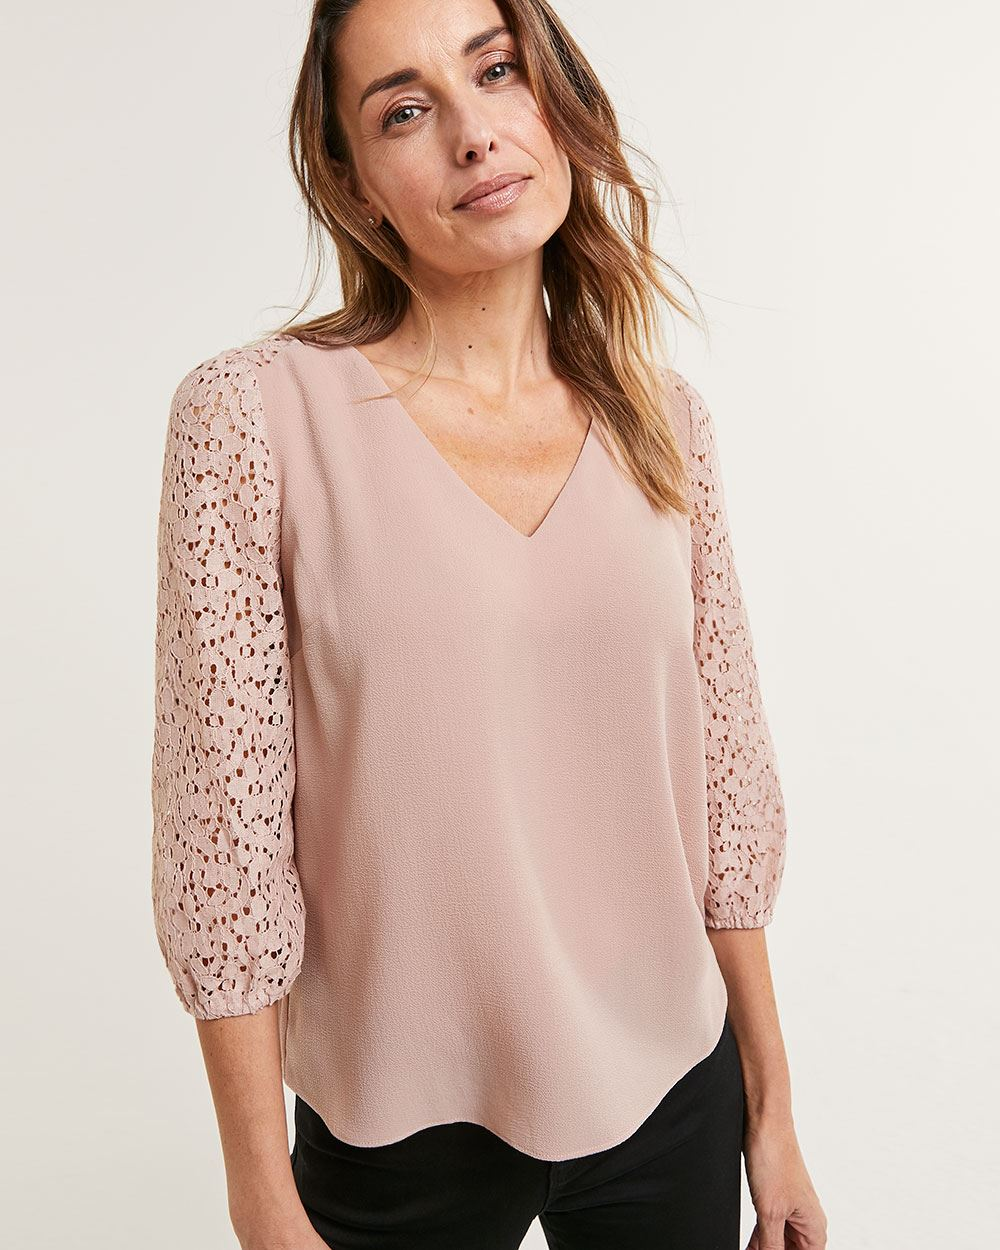 3/4 Sleeve V-Neck Blouse with Lace Inserts